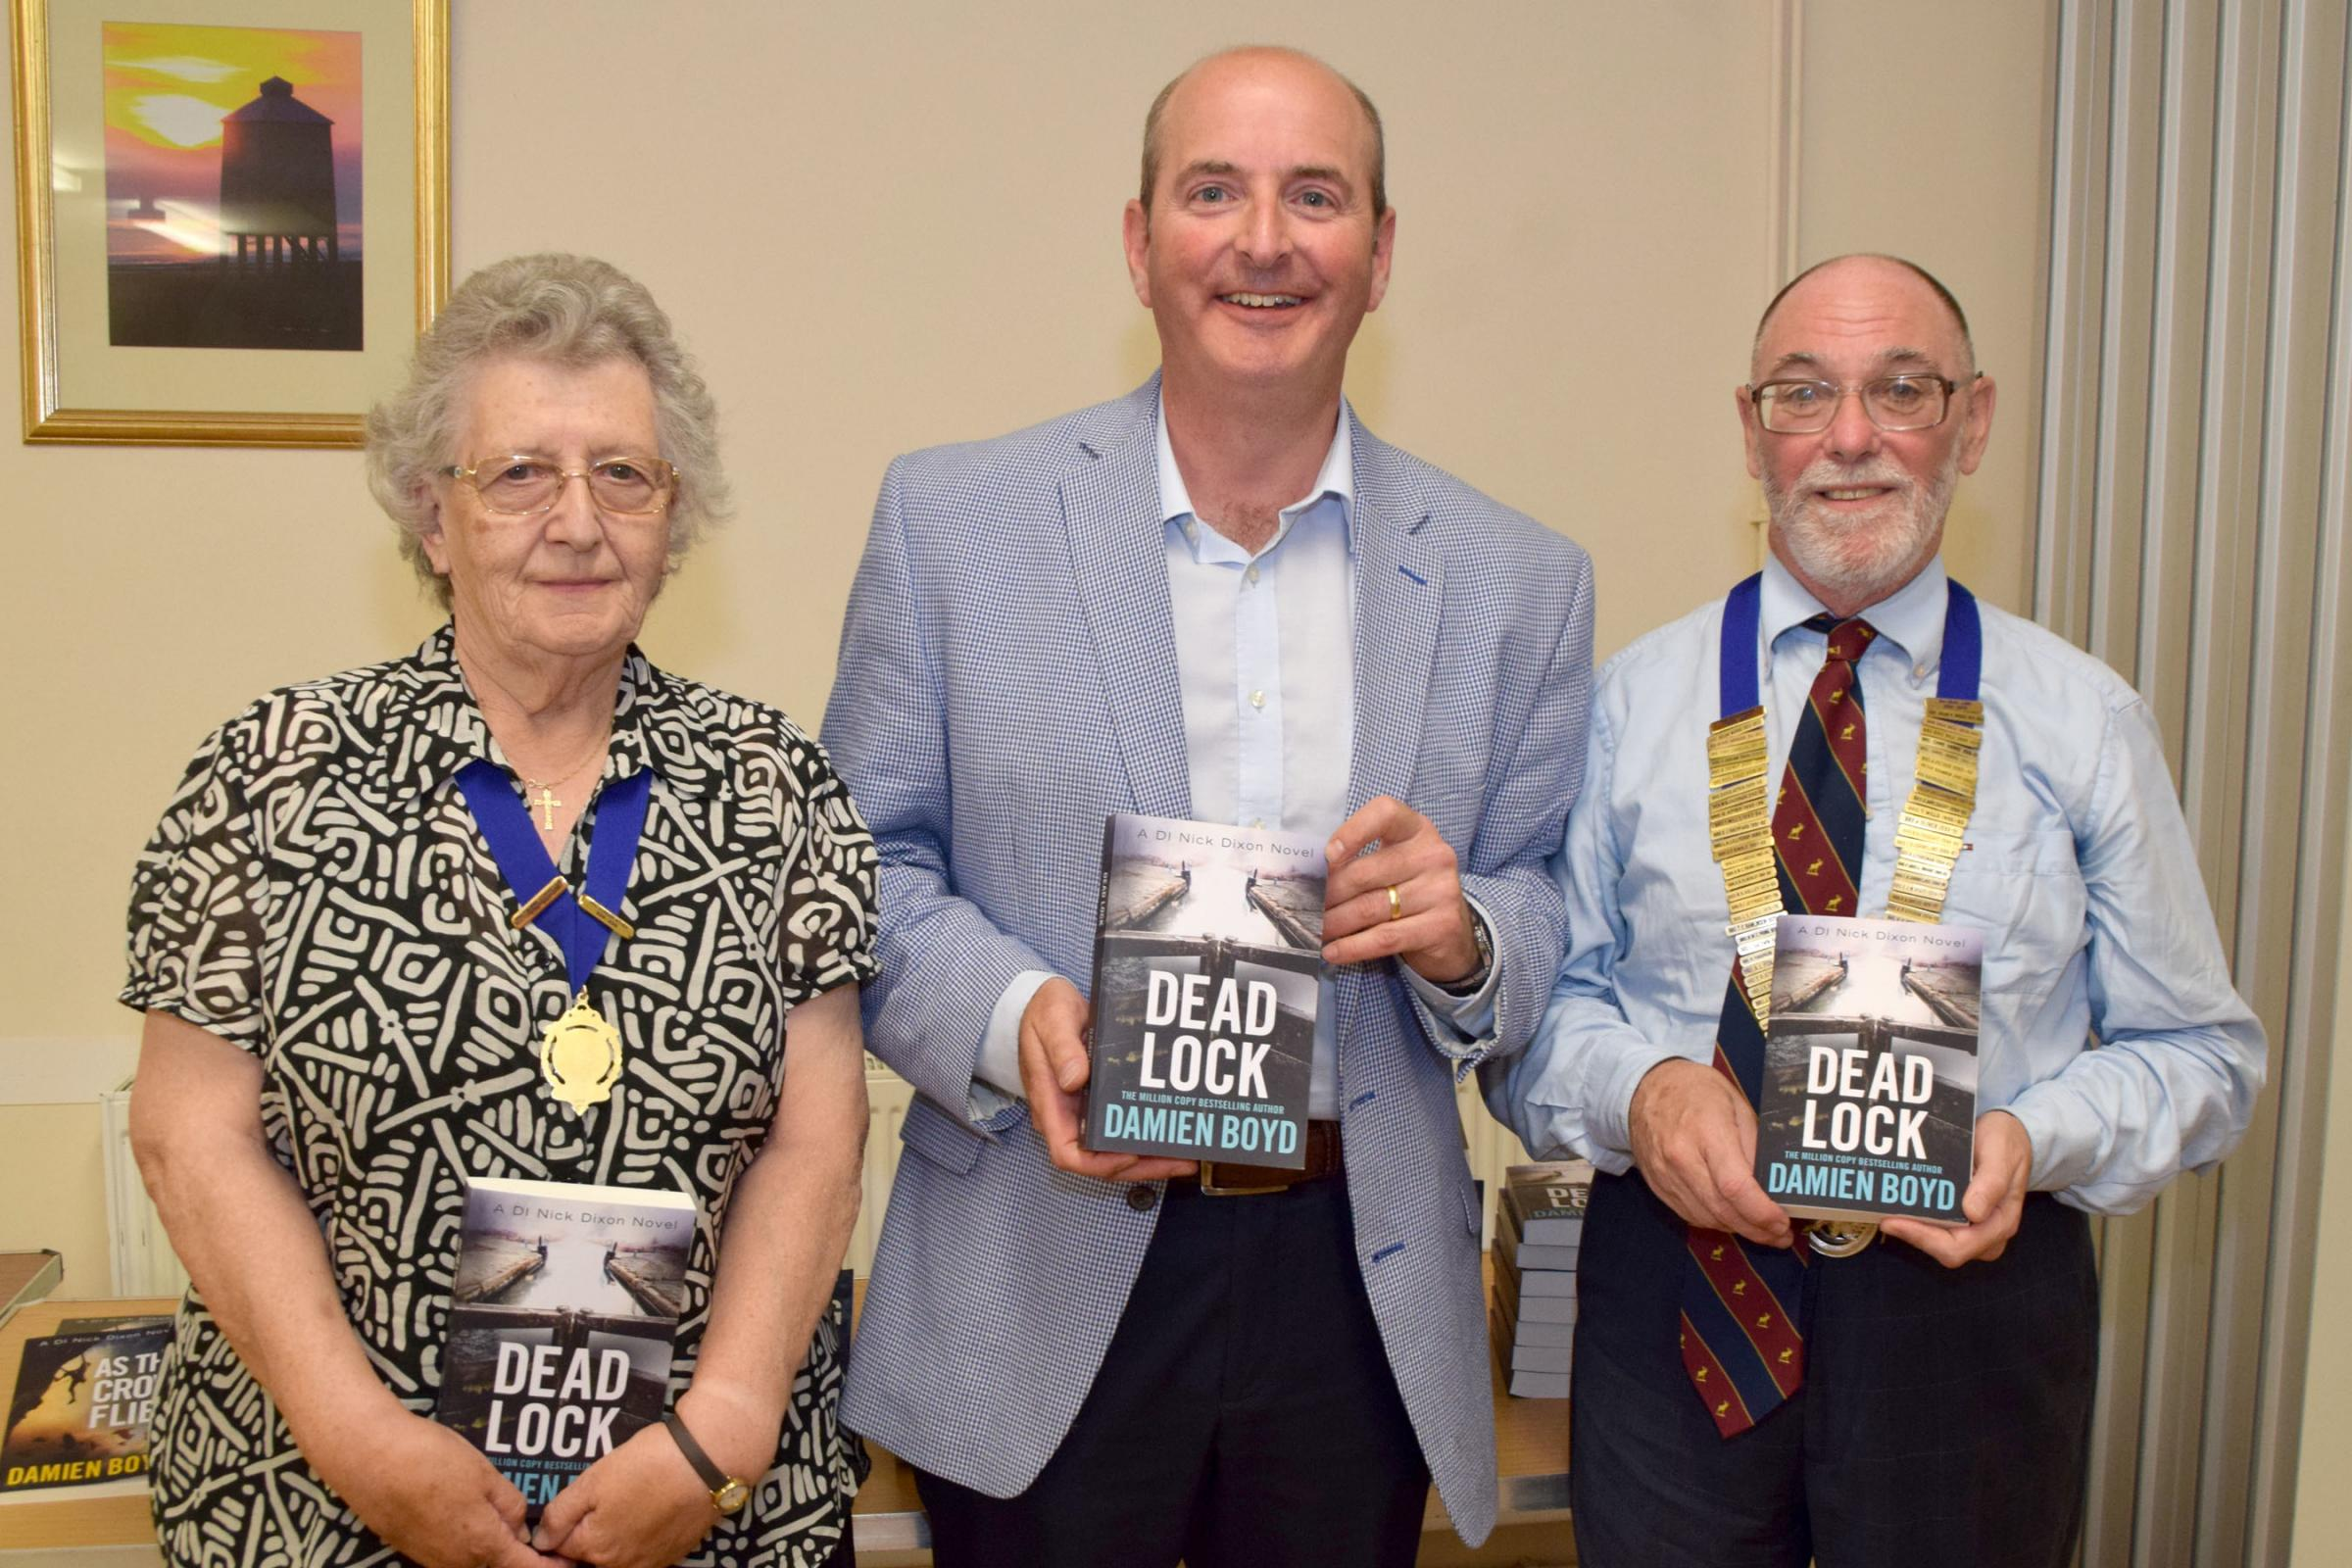 TALK: Author Damien Boyd with Pat Burge and Jim Dolan from Moose International. Credit - Mike Lang